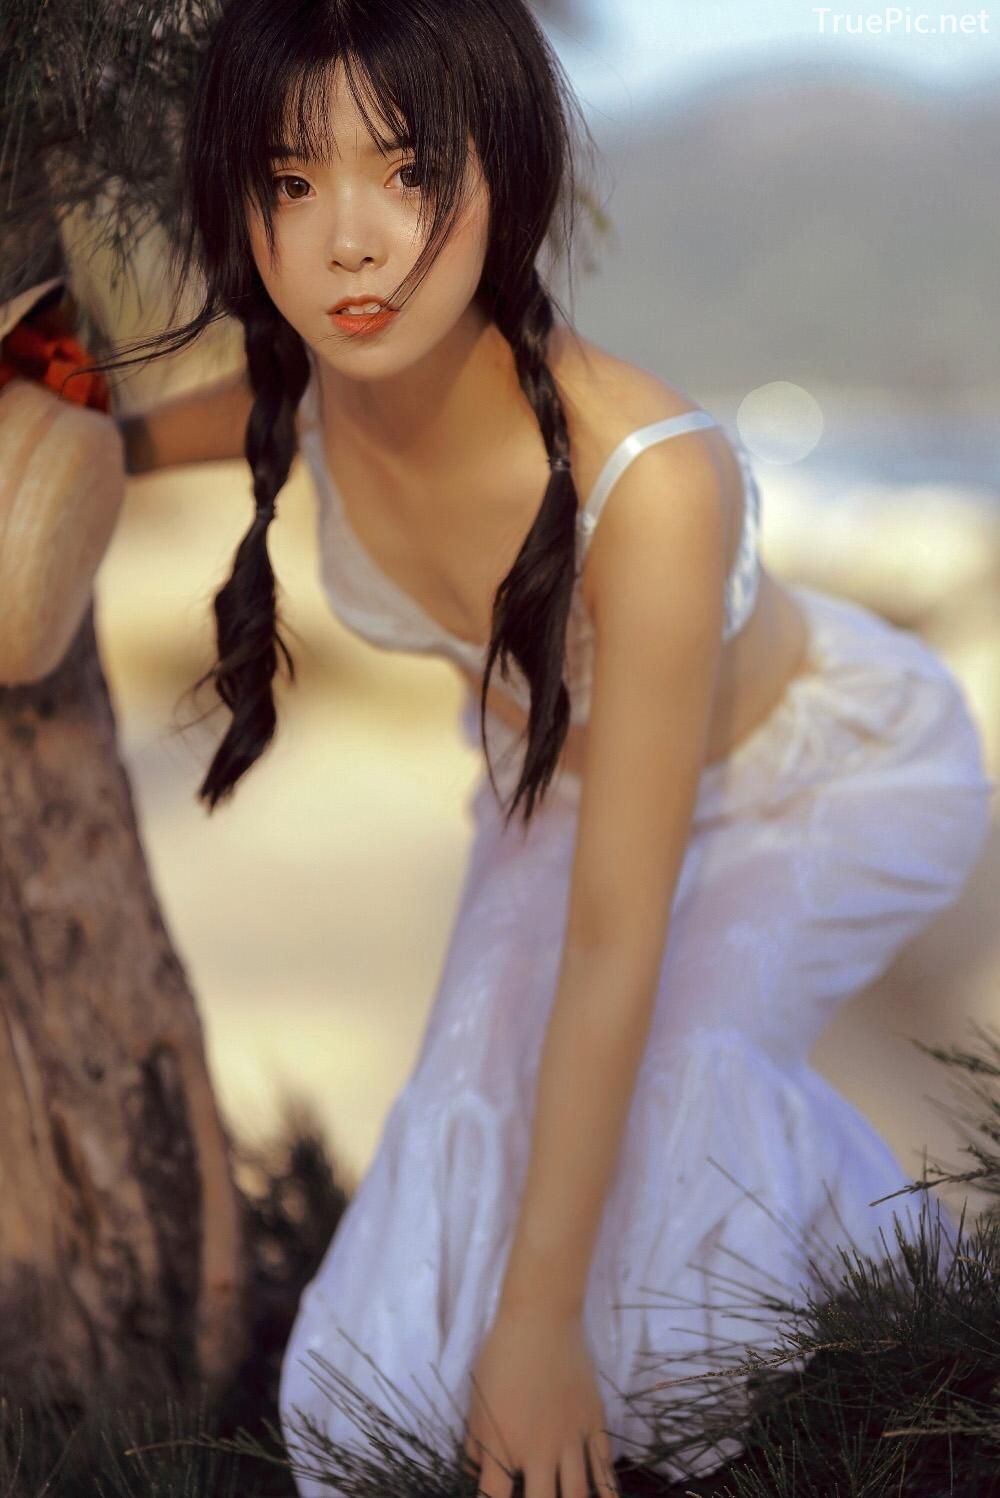 Chinese bautiful angel - Stay with you on a beautiful beach - TruePic.net - Picture 7